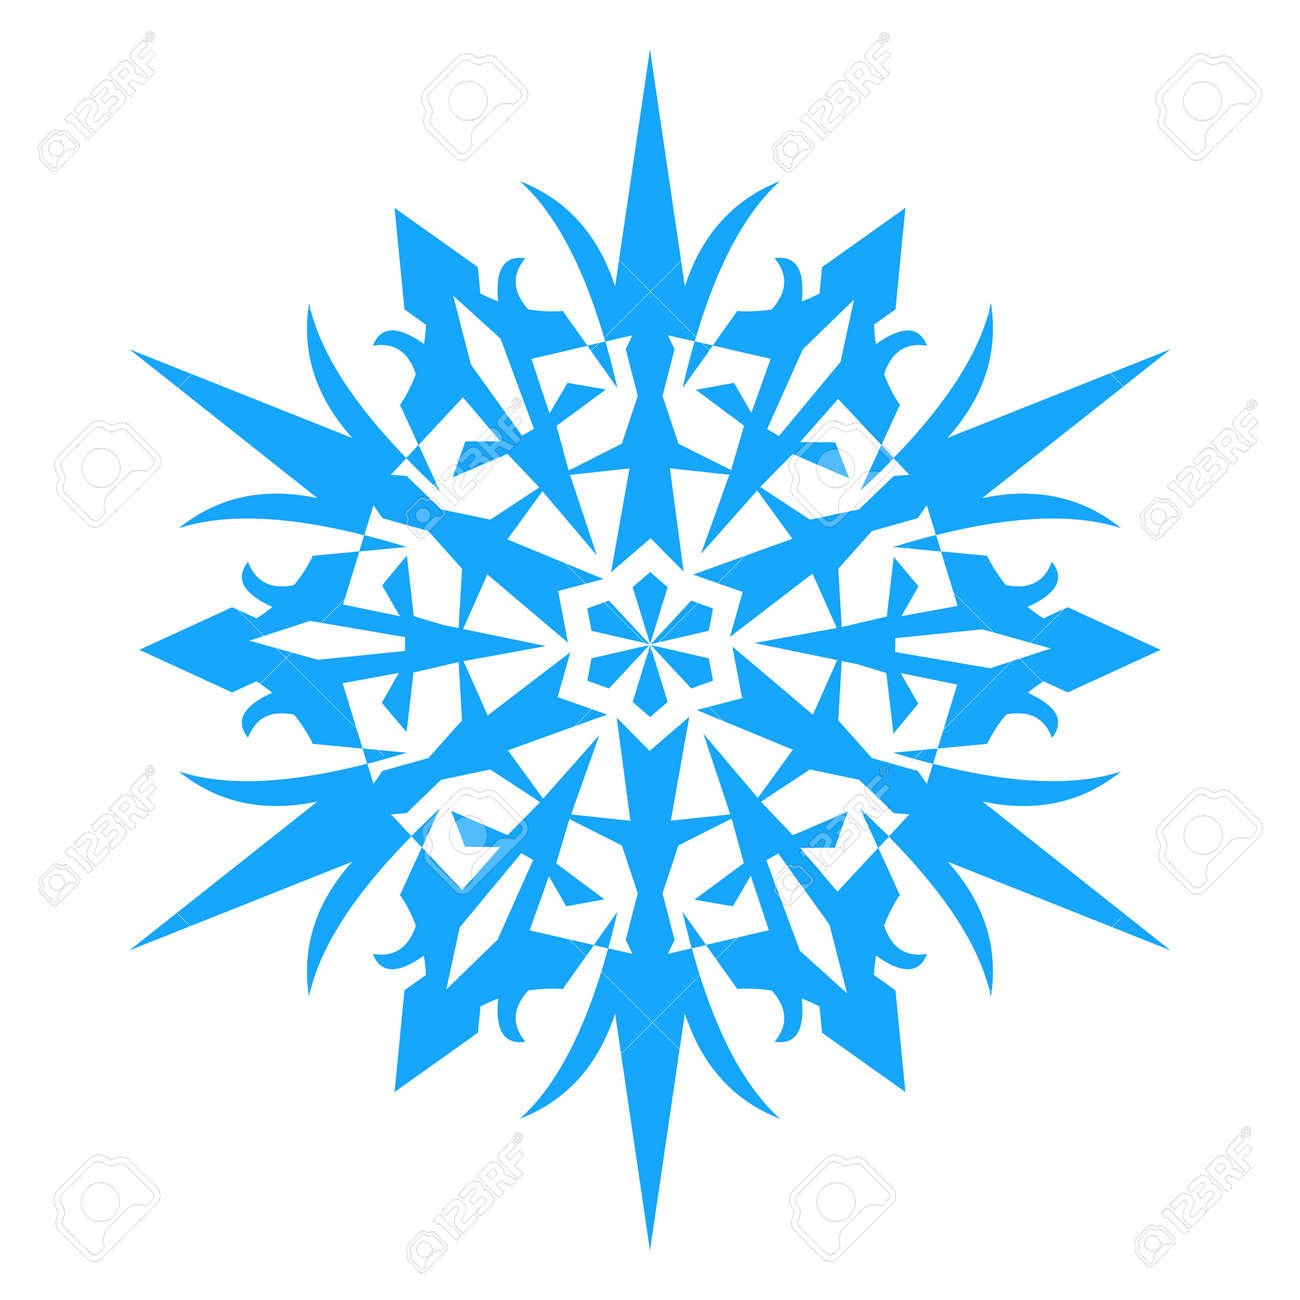 snowflake icon vector illlustration isolated on white background rh 123rf com free snowflake vector background free snowflake vector images